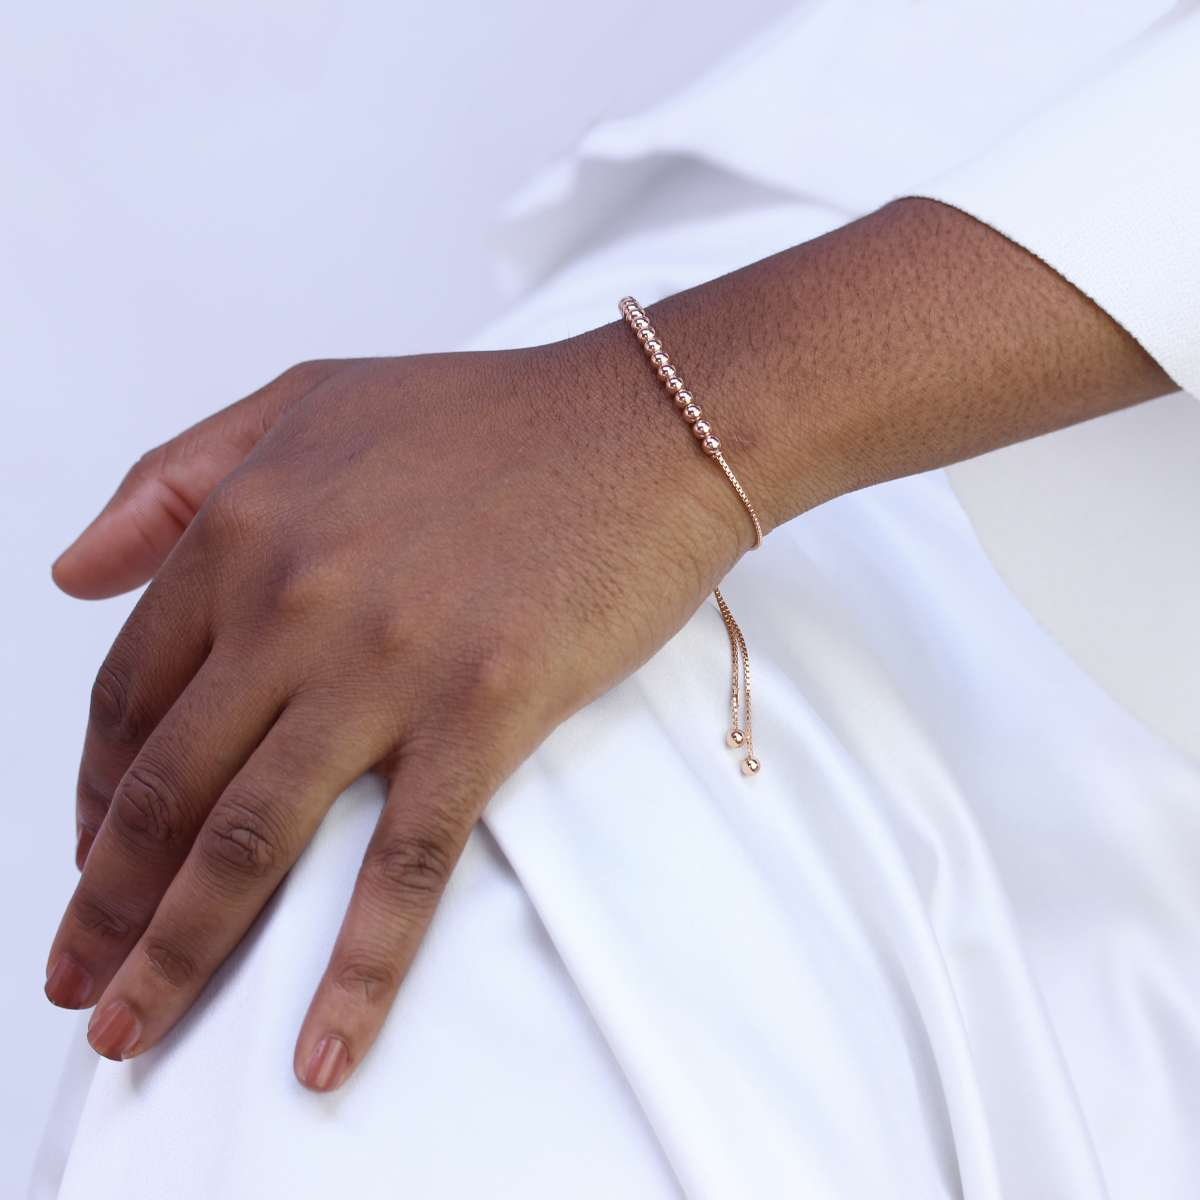 Alterative image for Rose Gold Plated Sterling Silver Adjustable Bead Bracelet